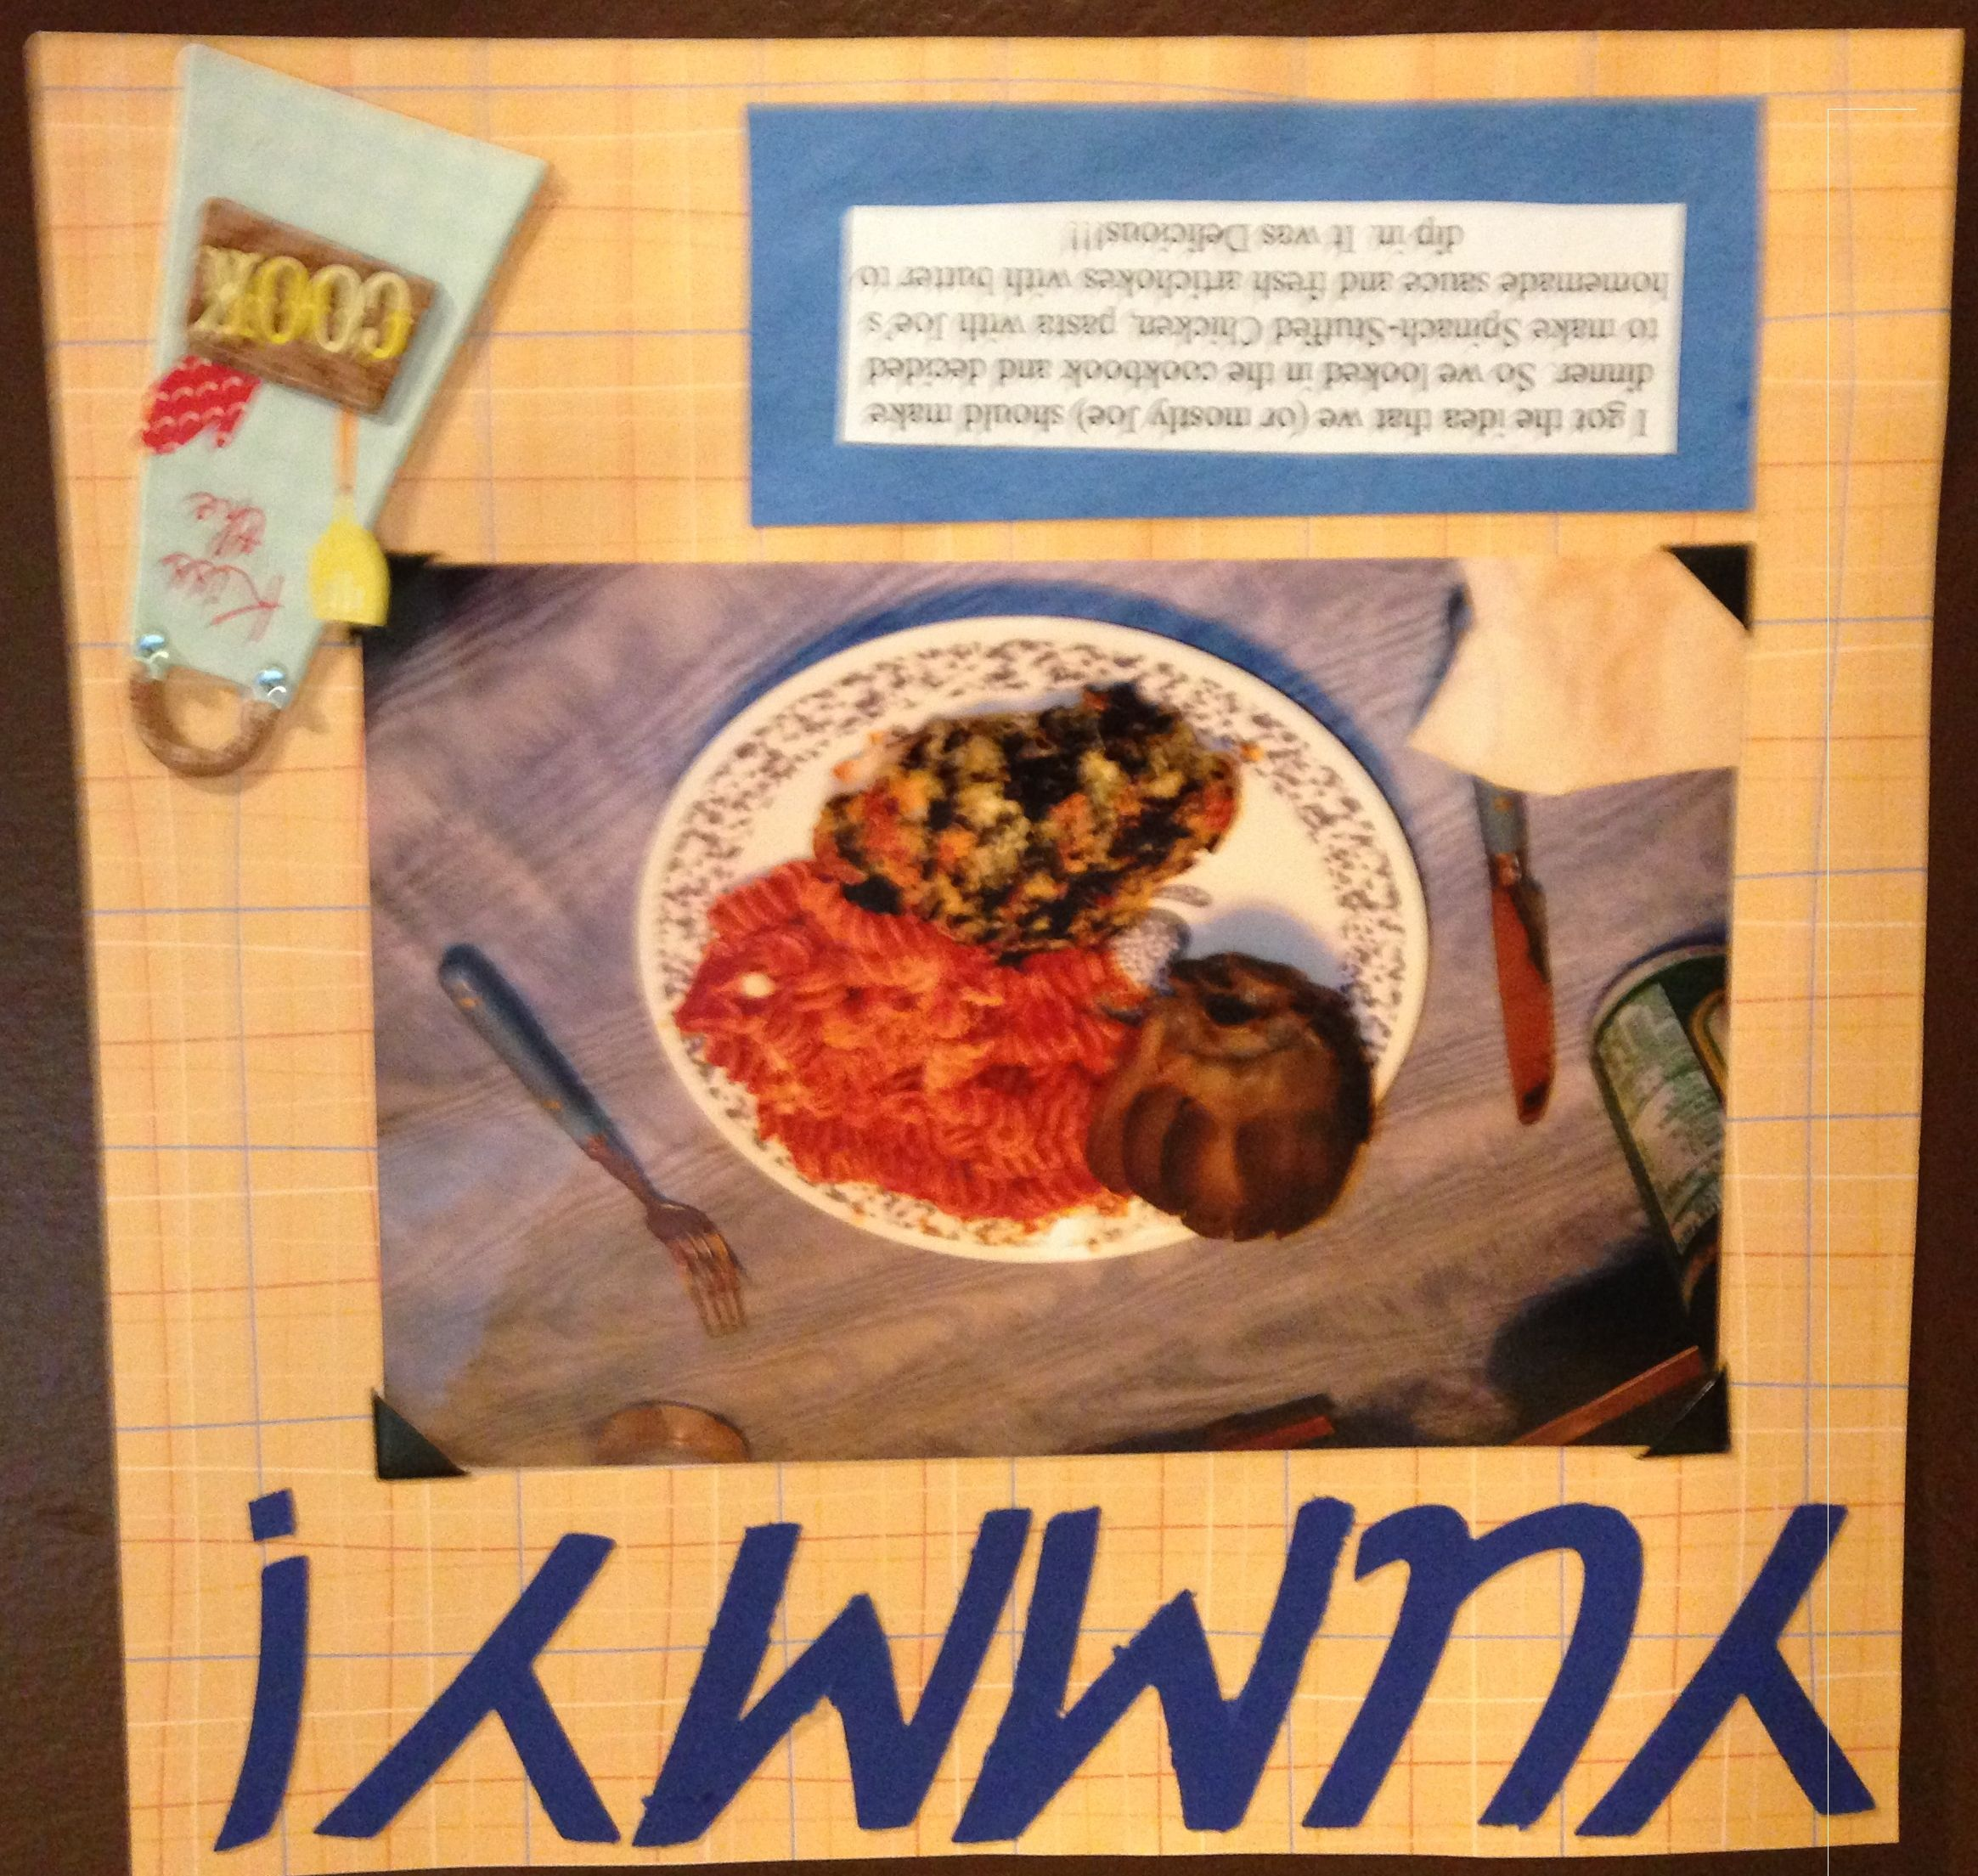 How to make scrapbook for my boyfriend - Yummy Homemade Dinner This The First Dinner My Boyfriend Made For Me